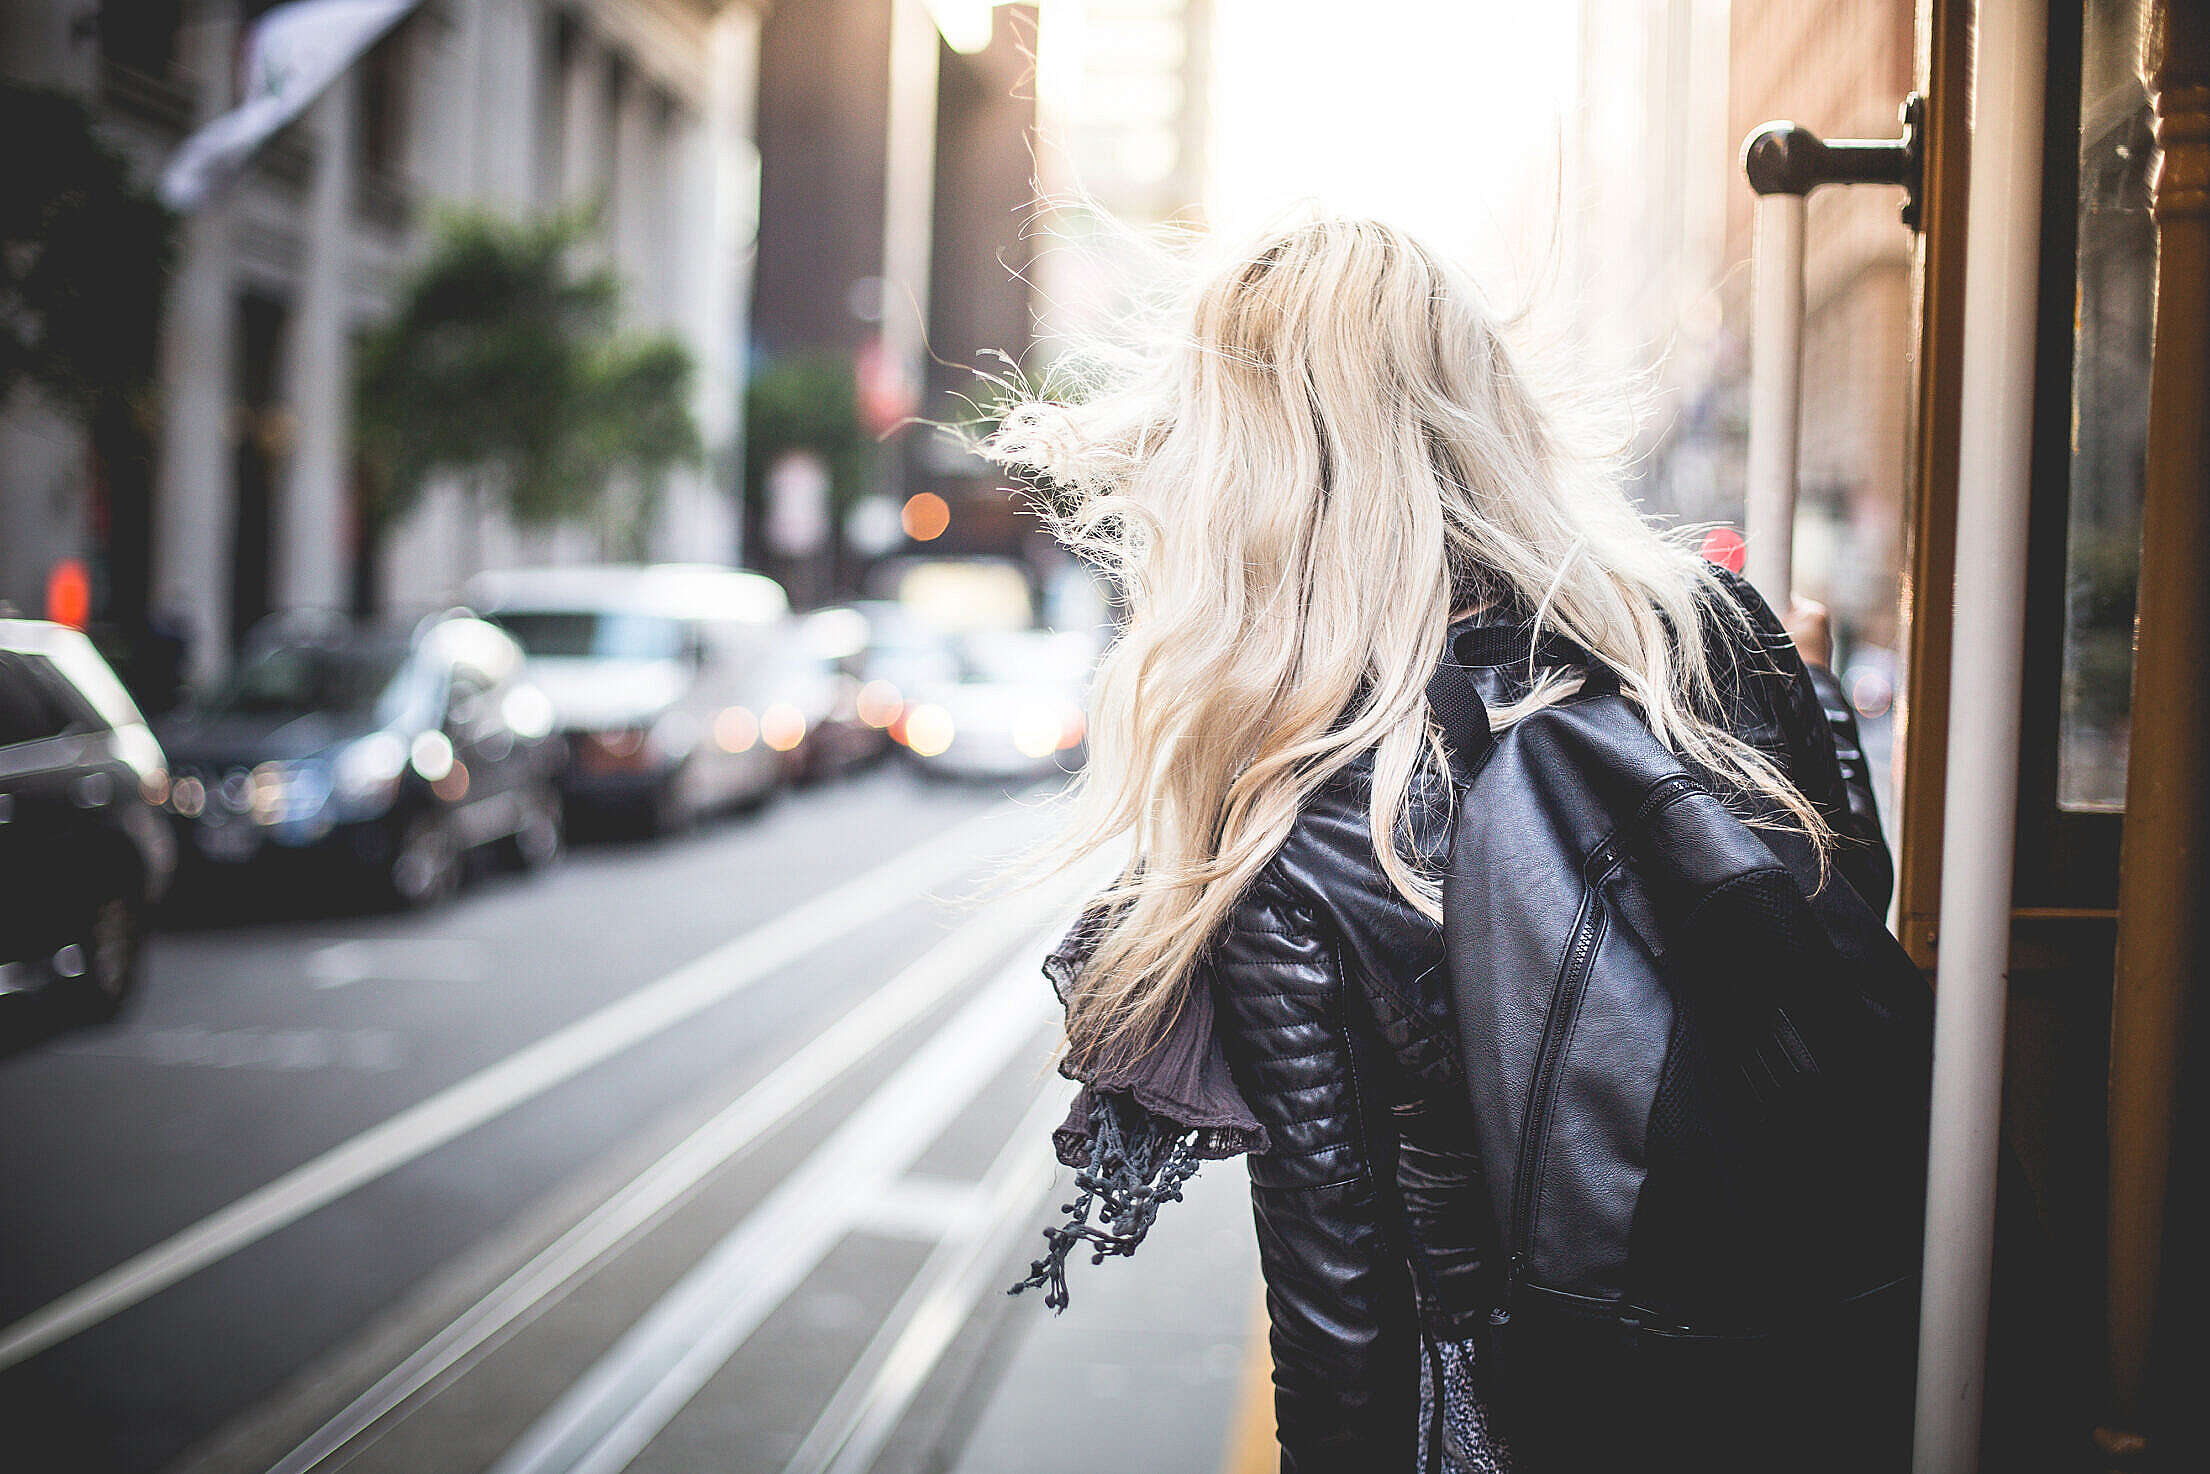 Young Woman Riding The Famous Cable Car in San Francisco Free Stock Photo